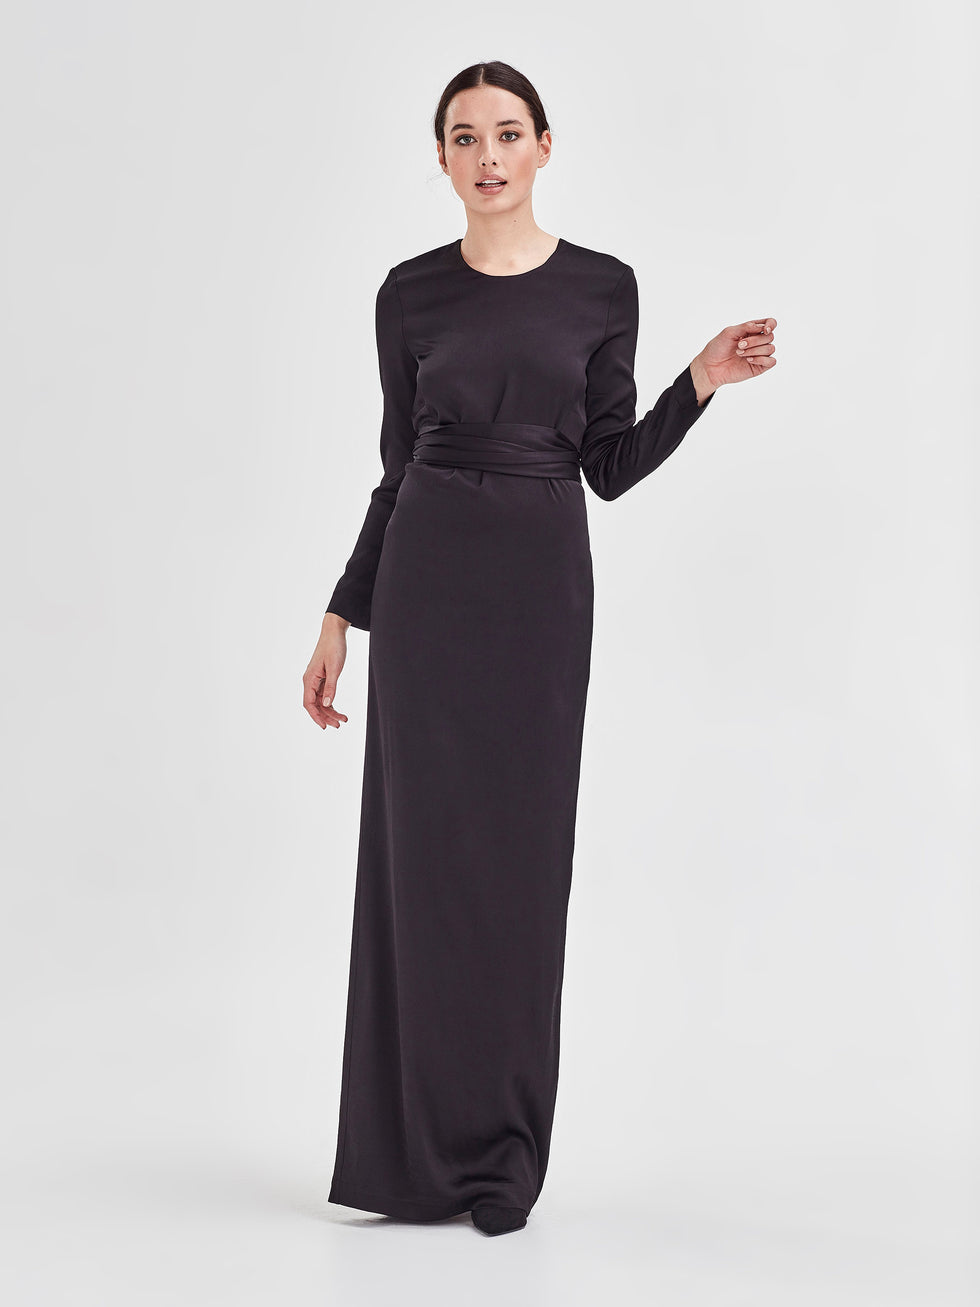 Honor Dress (Stretch Satin) Black